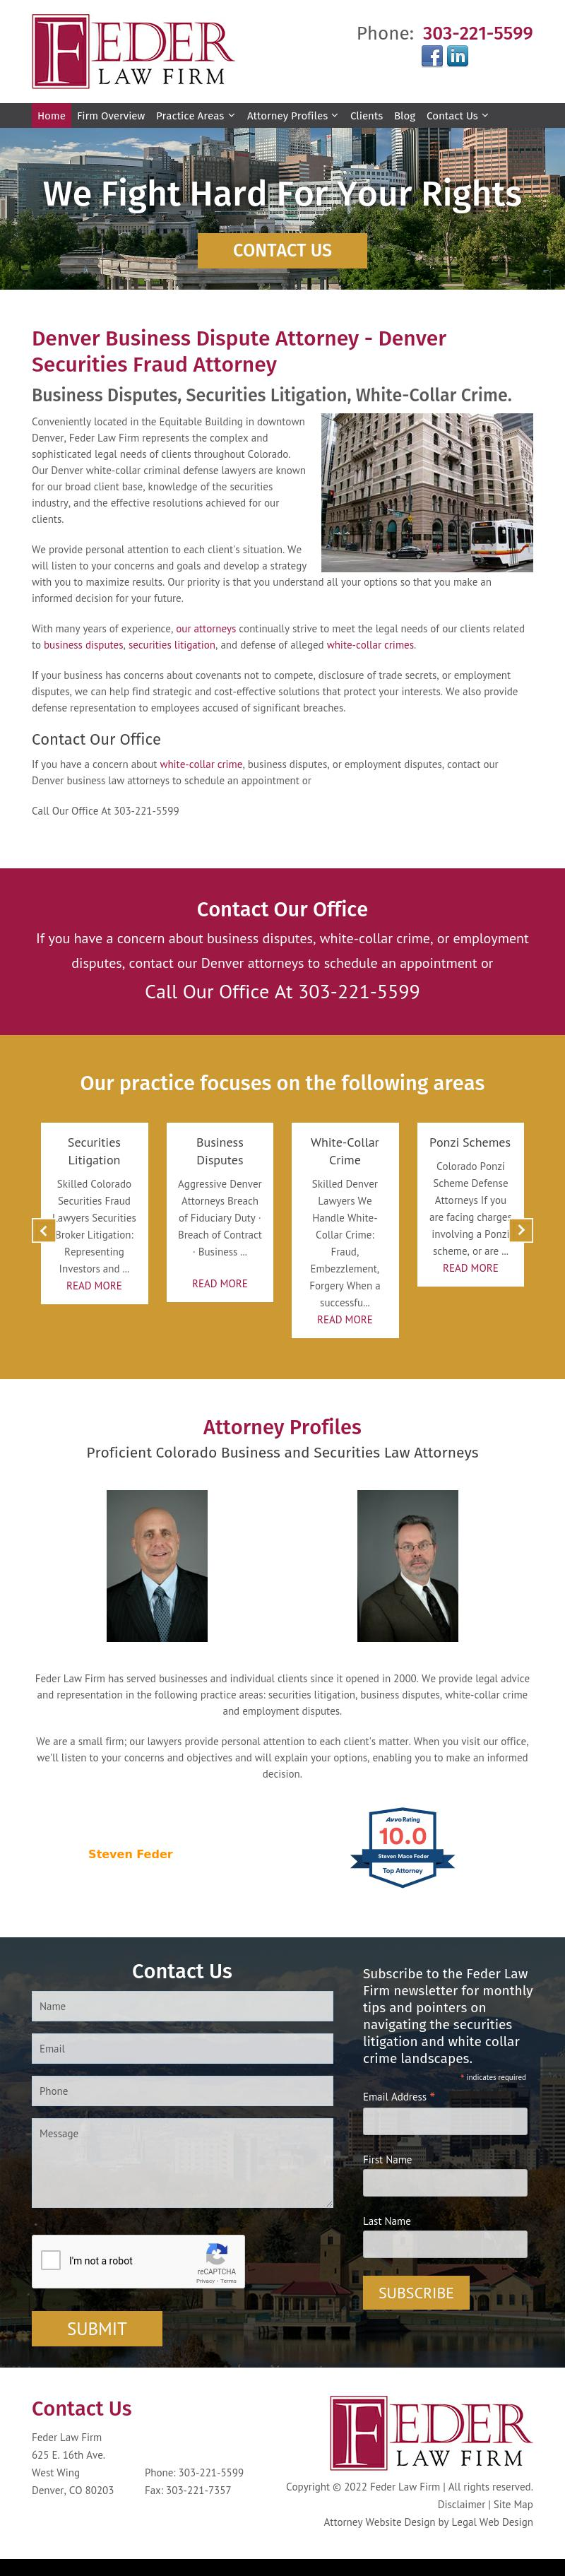 Feder Law Firm - Denver CO Lawyers